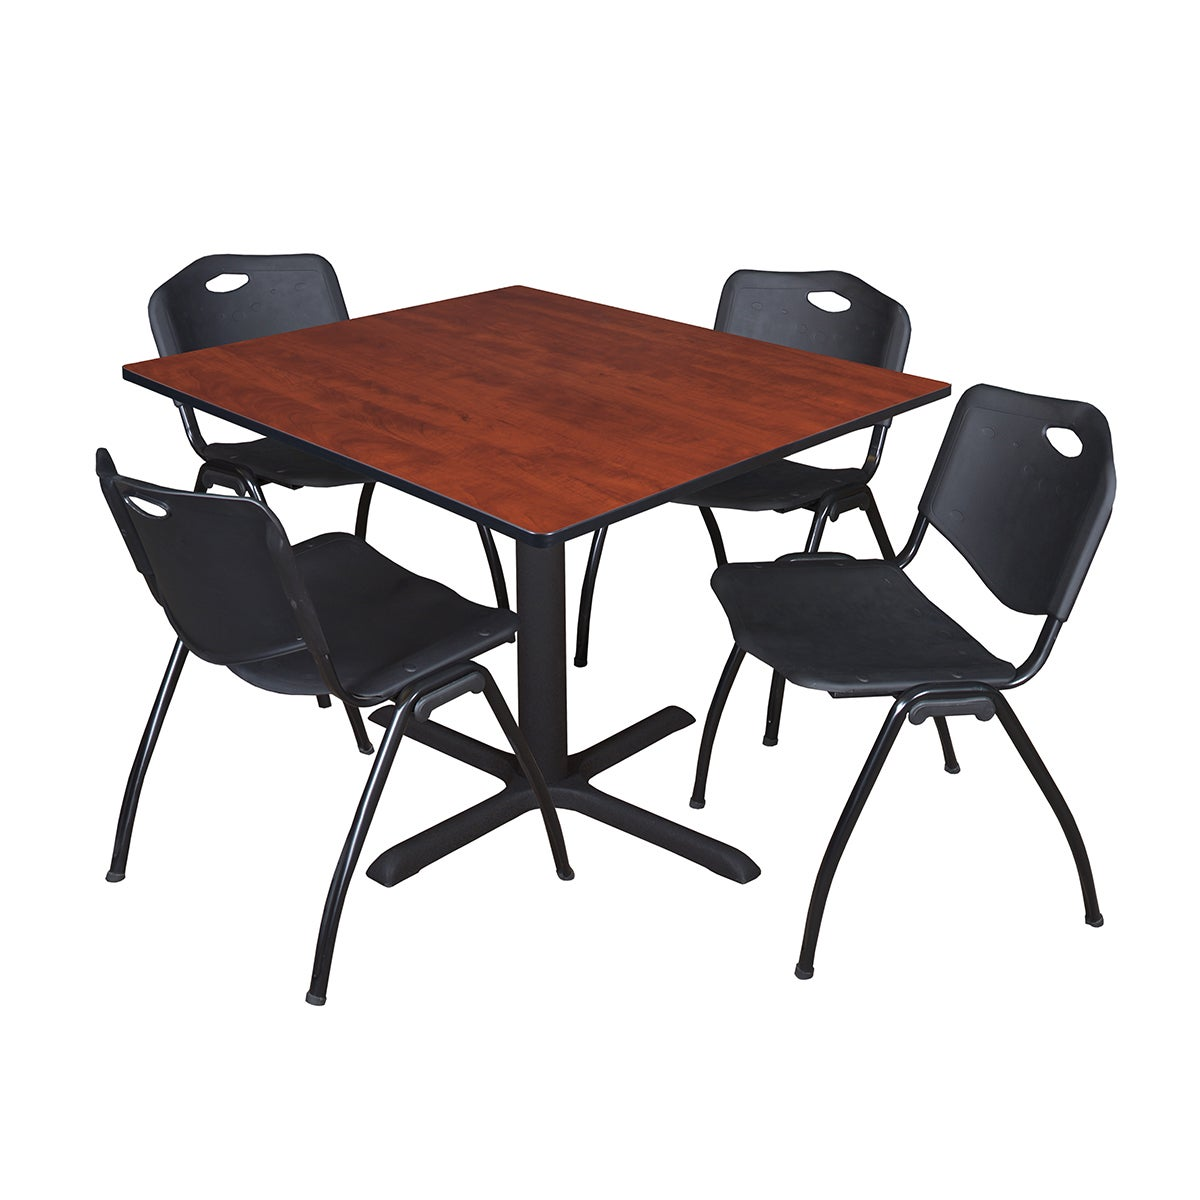 Details About 48 Inch Square Table And 4 M Stackable Black Chairs